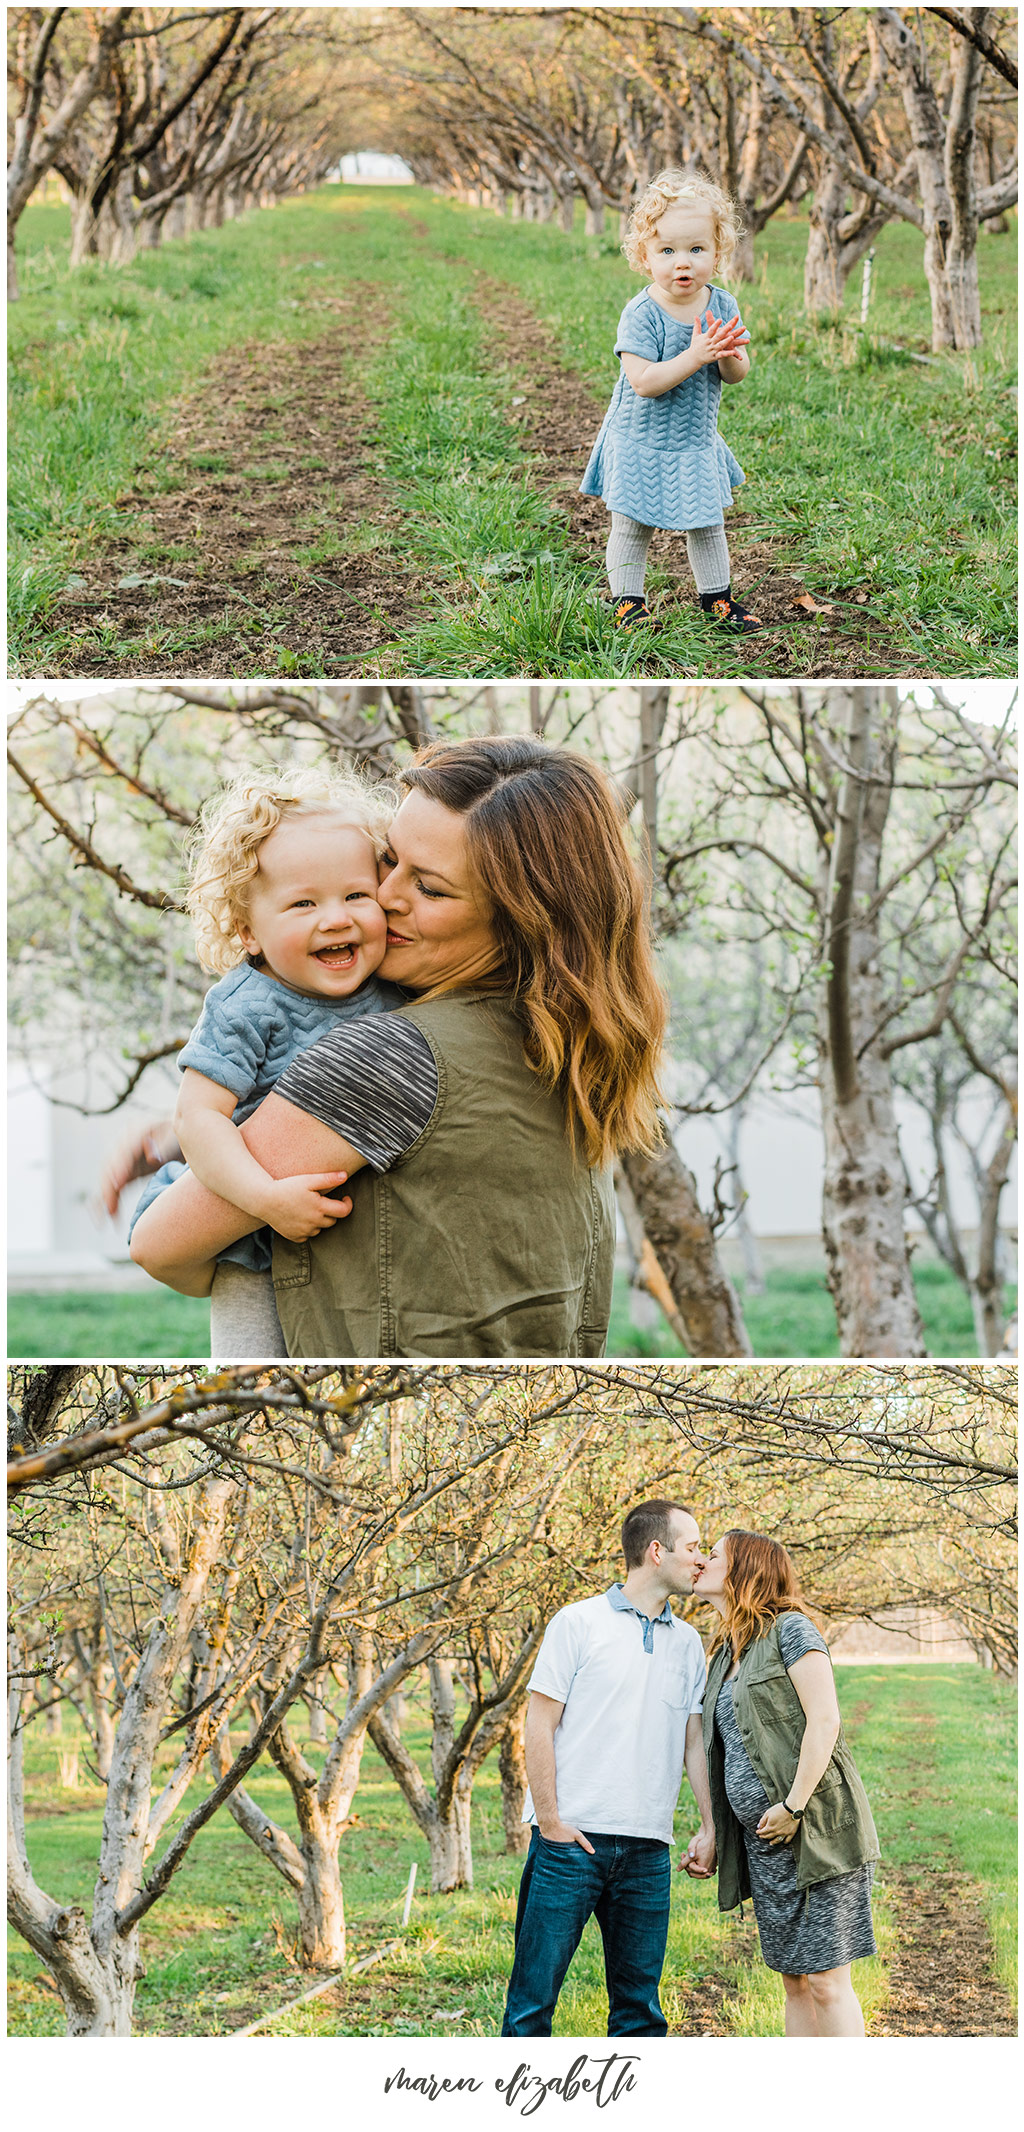 Family Pictures in a Spring Orchard. Maternity Family Pictures with Toddler | Arizona Family Photographer | Maren Elizabeth Photography